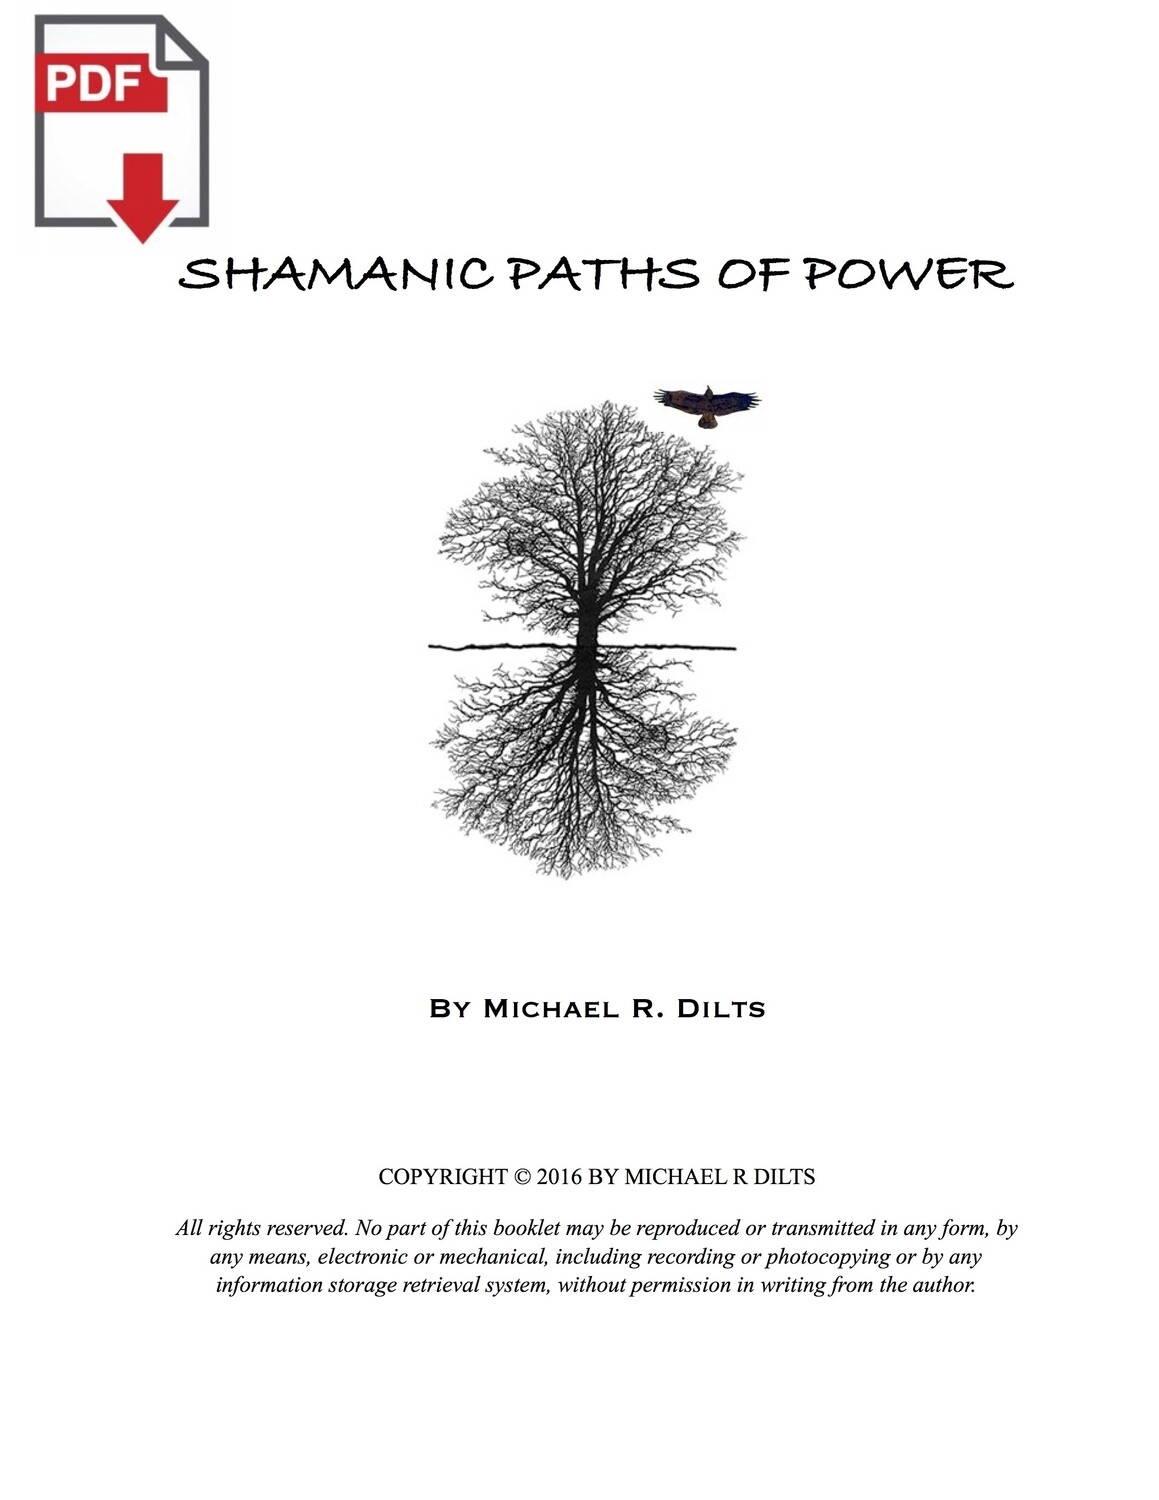 Shamanic Paths of Power by Michael R. Dilts [PDF]